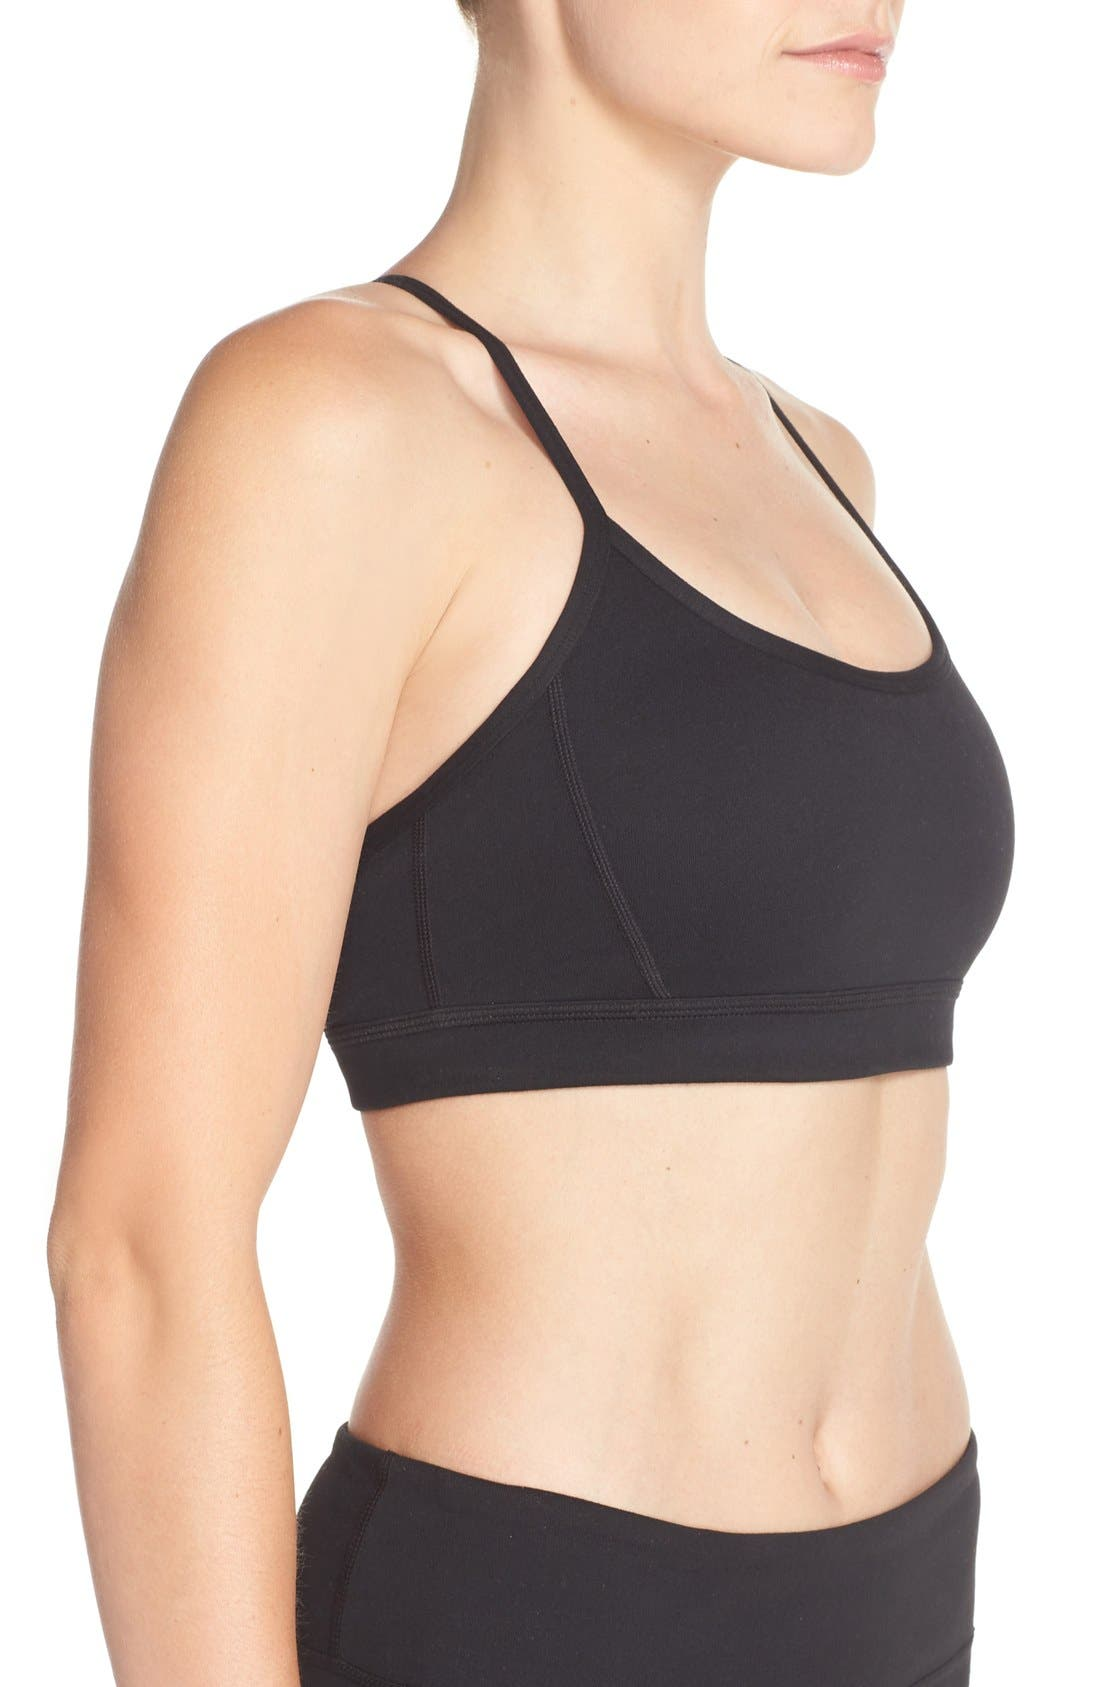 'Cupid' Sports Bra,                             Alternate thumbnail 2, color,                             001